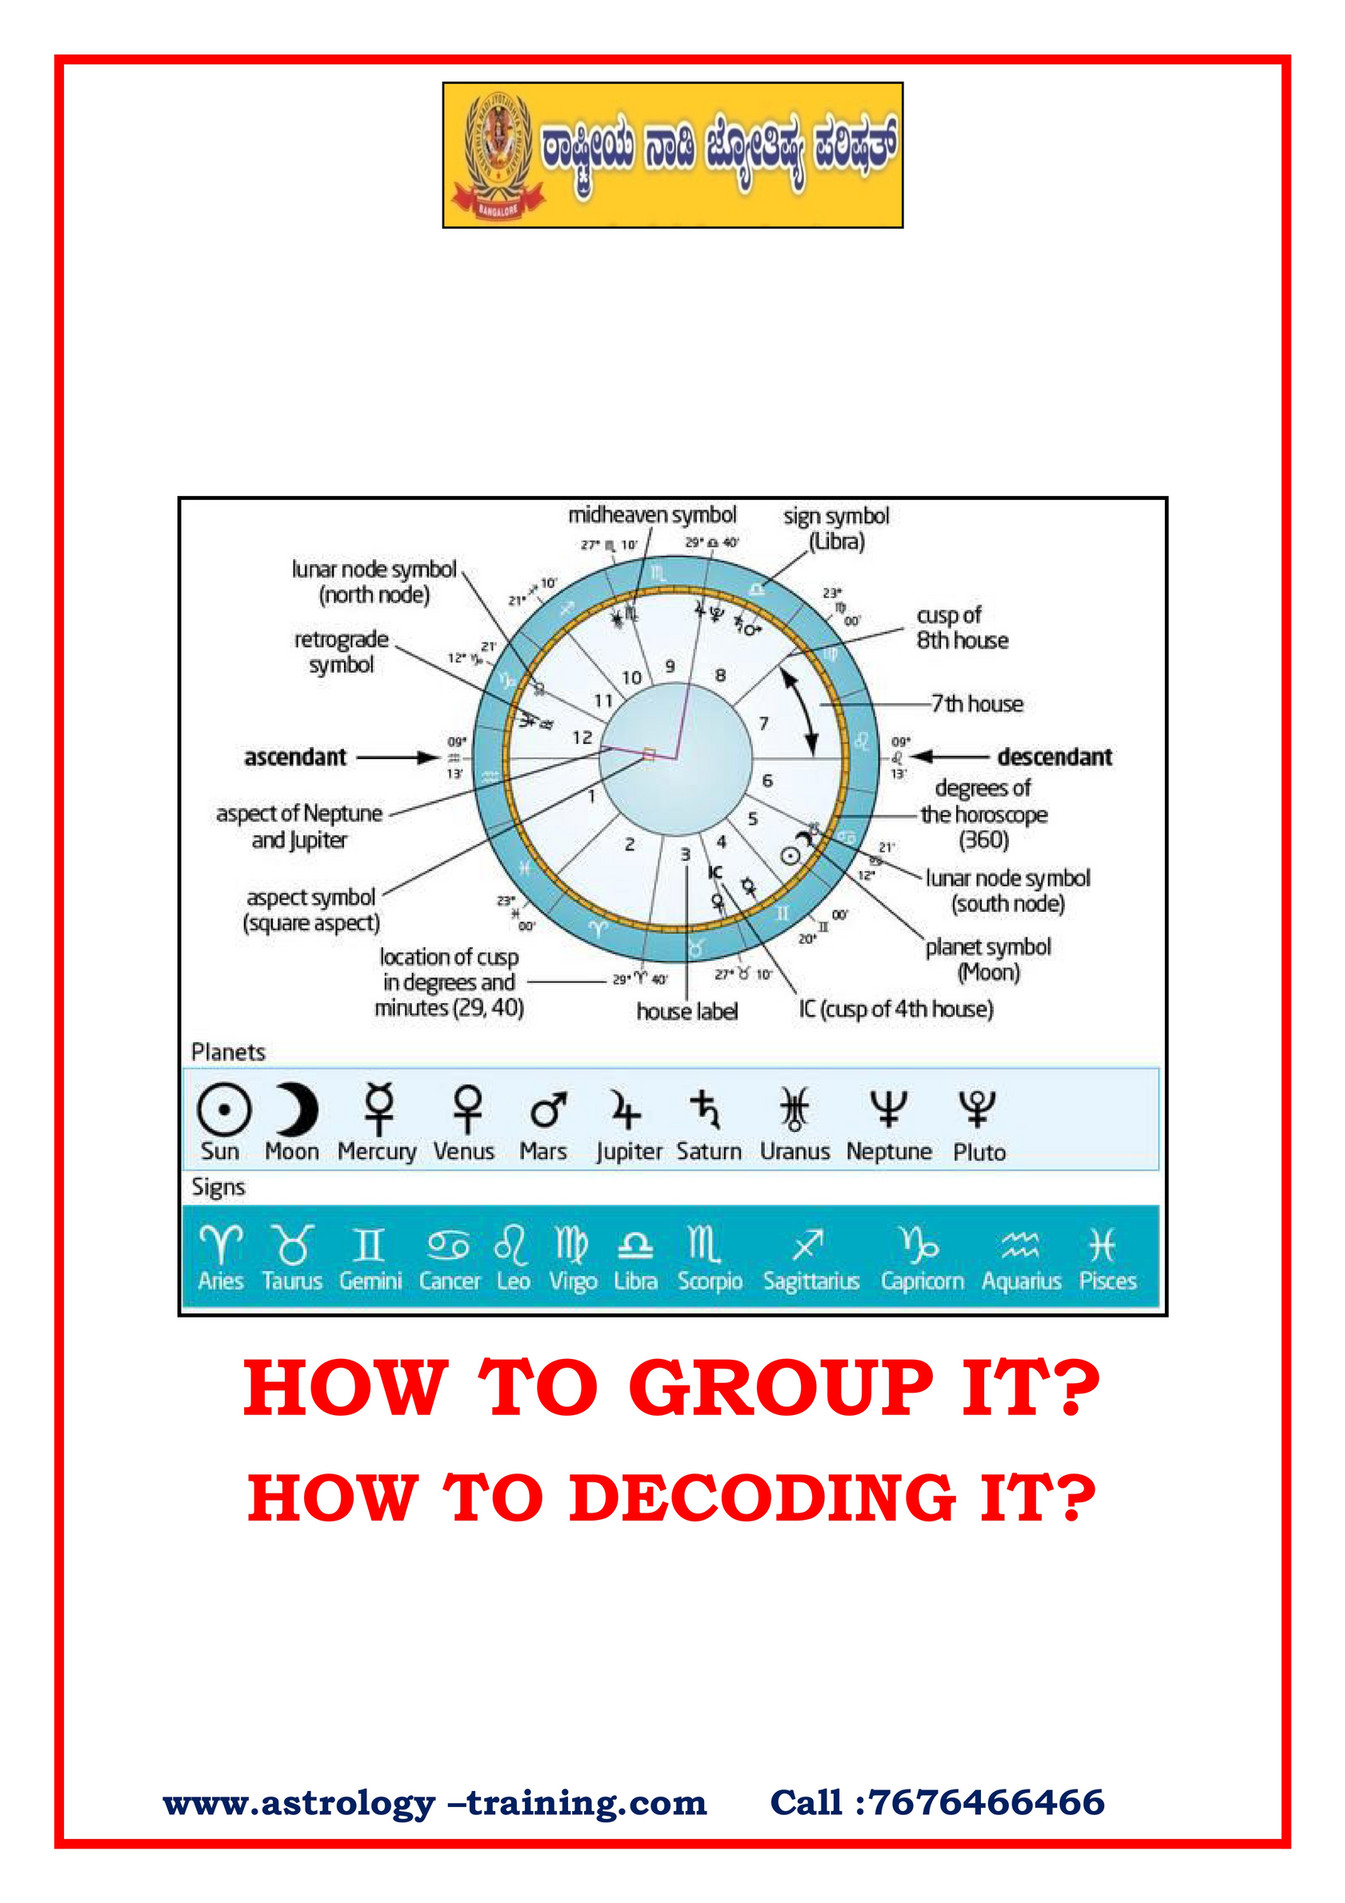 www astrology-training com - Grouping In Nadi Astrology - Page 1